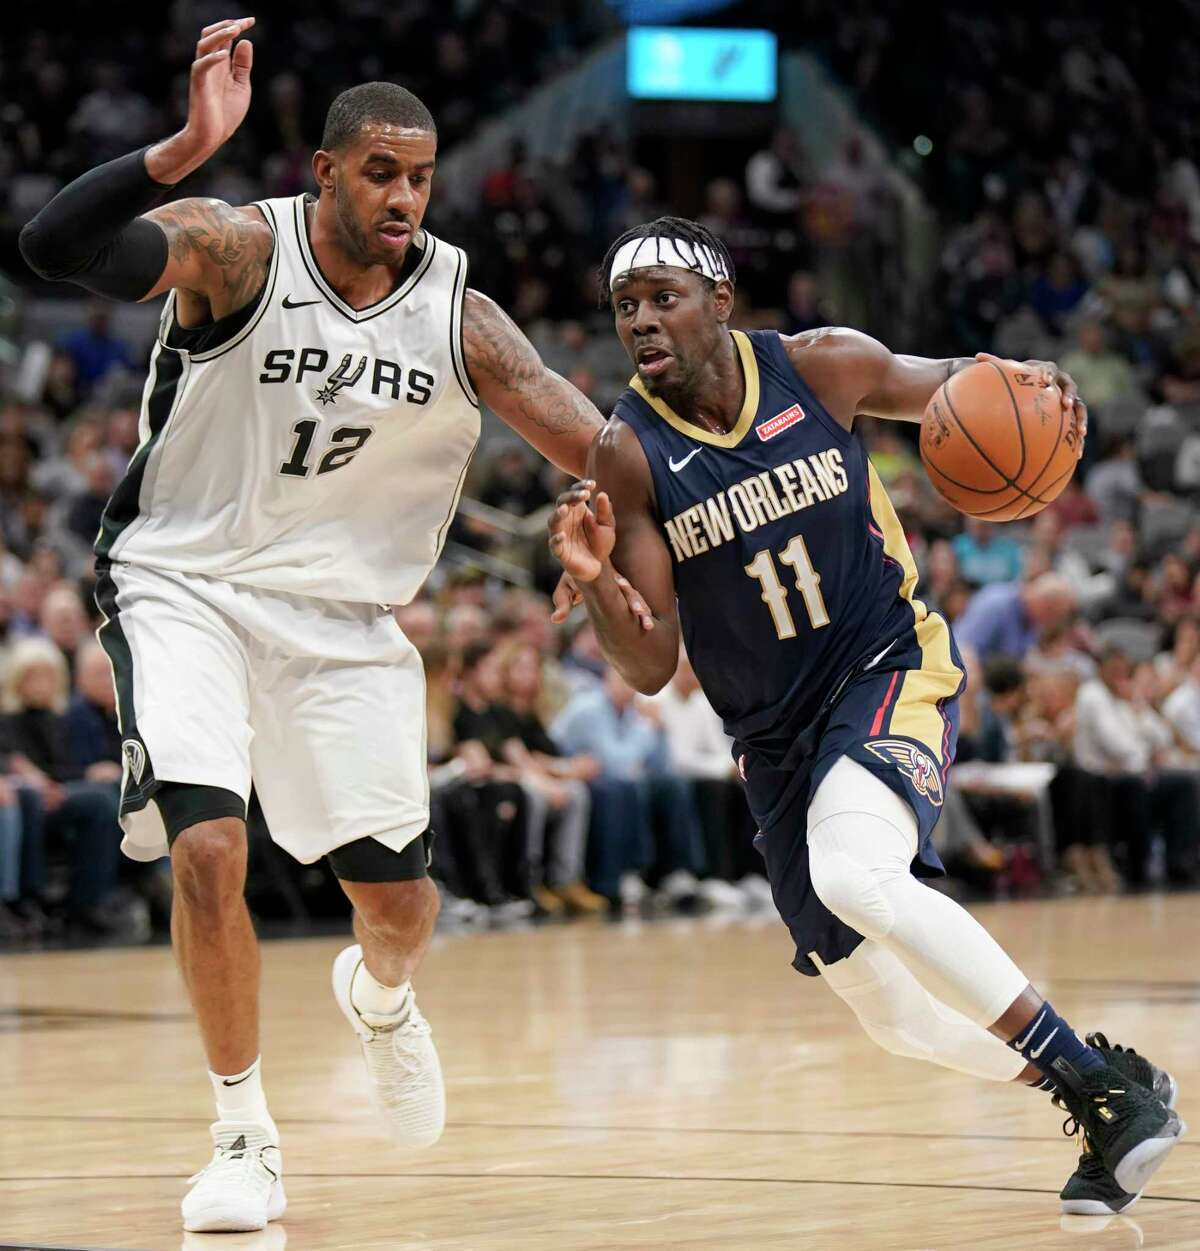 New Orleans Pelicans' Jrue Holiday (11) drives past San Antonio Spurs' LaMarcus Aldridge during the first half of an NBA basketball game, Thursday, March 15, 2018, in San Antonio. (AP Photo/Darren Abate)